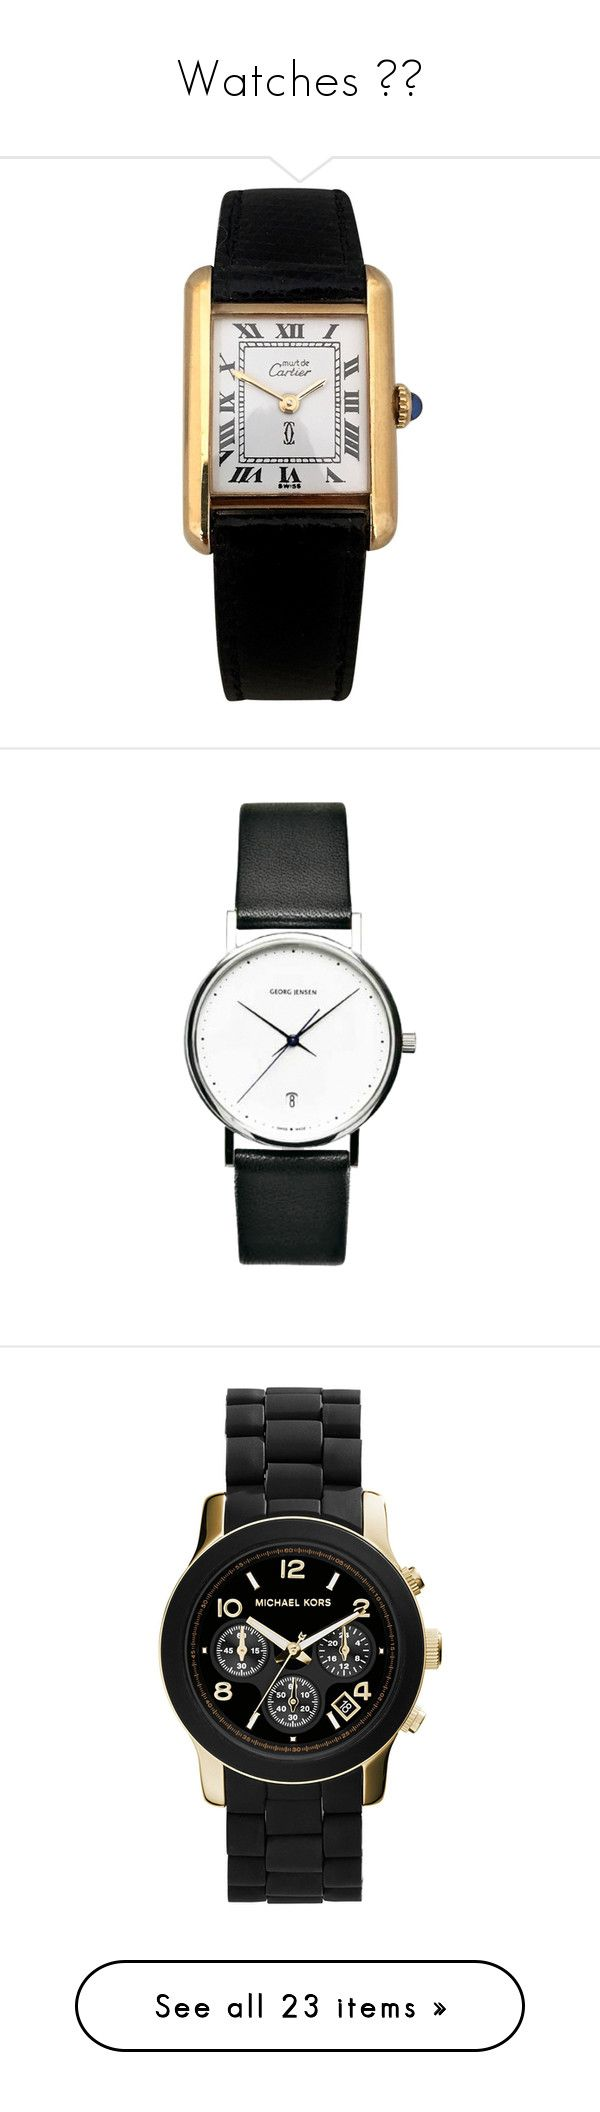 """""""Watches ⌚️"""" by plaidpandacartier ❤ liked on Polyvore featuring jewelry, watches, white, cartier watches, preowned watches, cartier jewellery, white jewelry, pre owned watches, accessories and bracelets"""